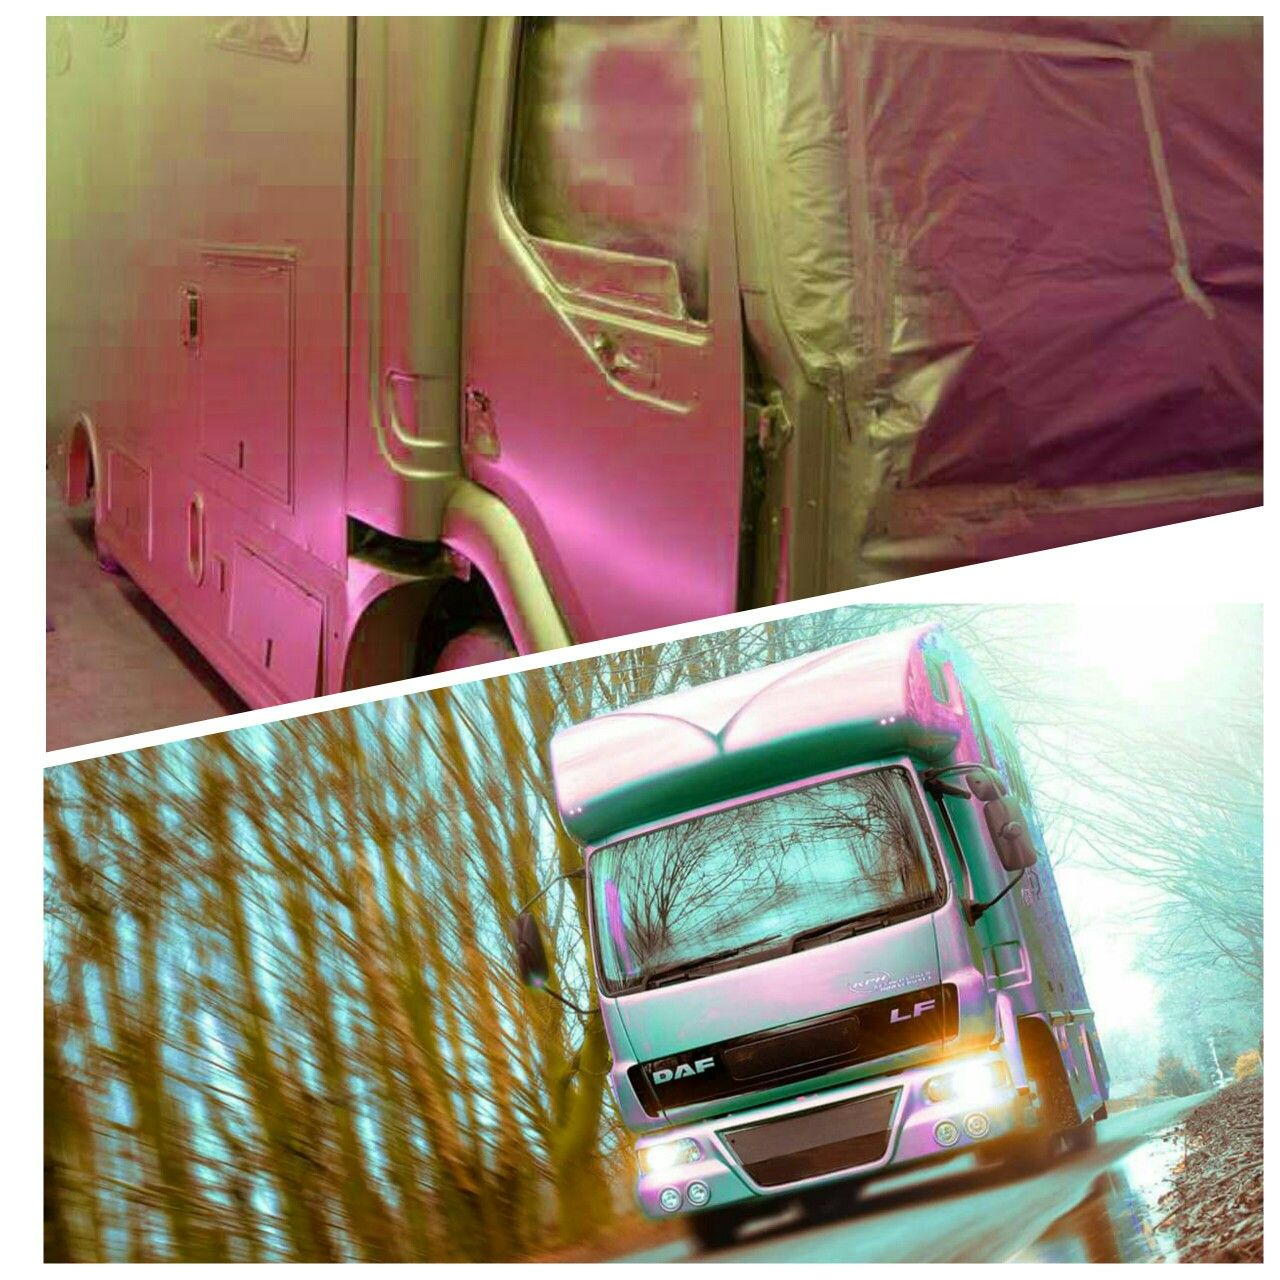 This flip paint looks a different colour from different directions! #KPHLTD #HorseHour #horseboxes #Equihour #EquineHour